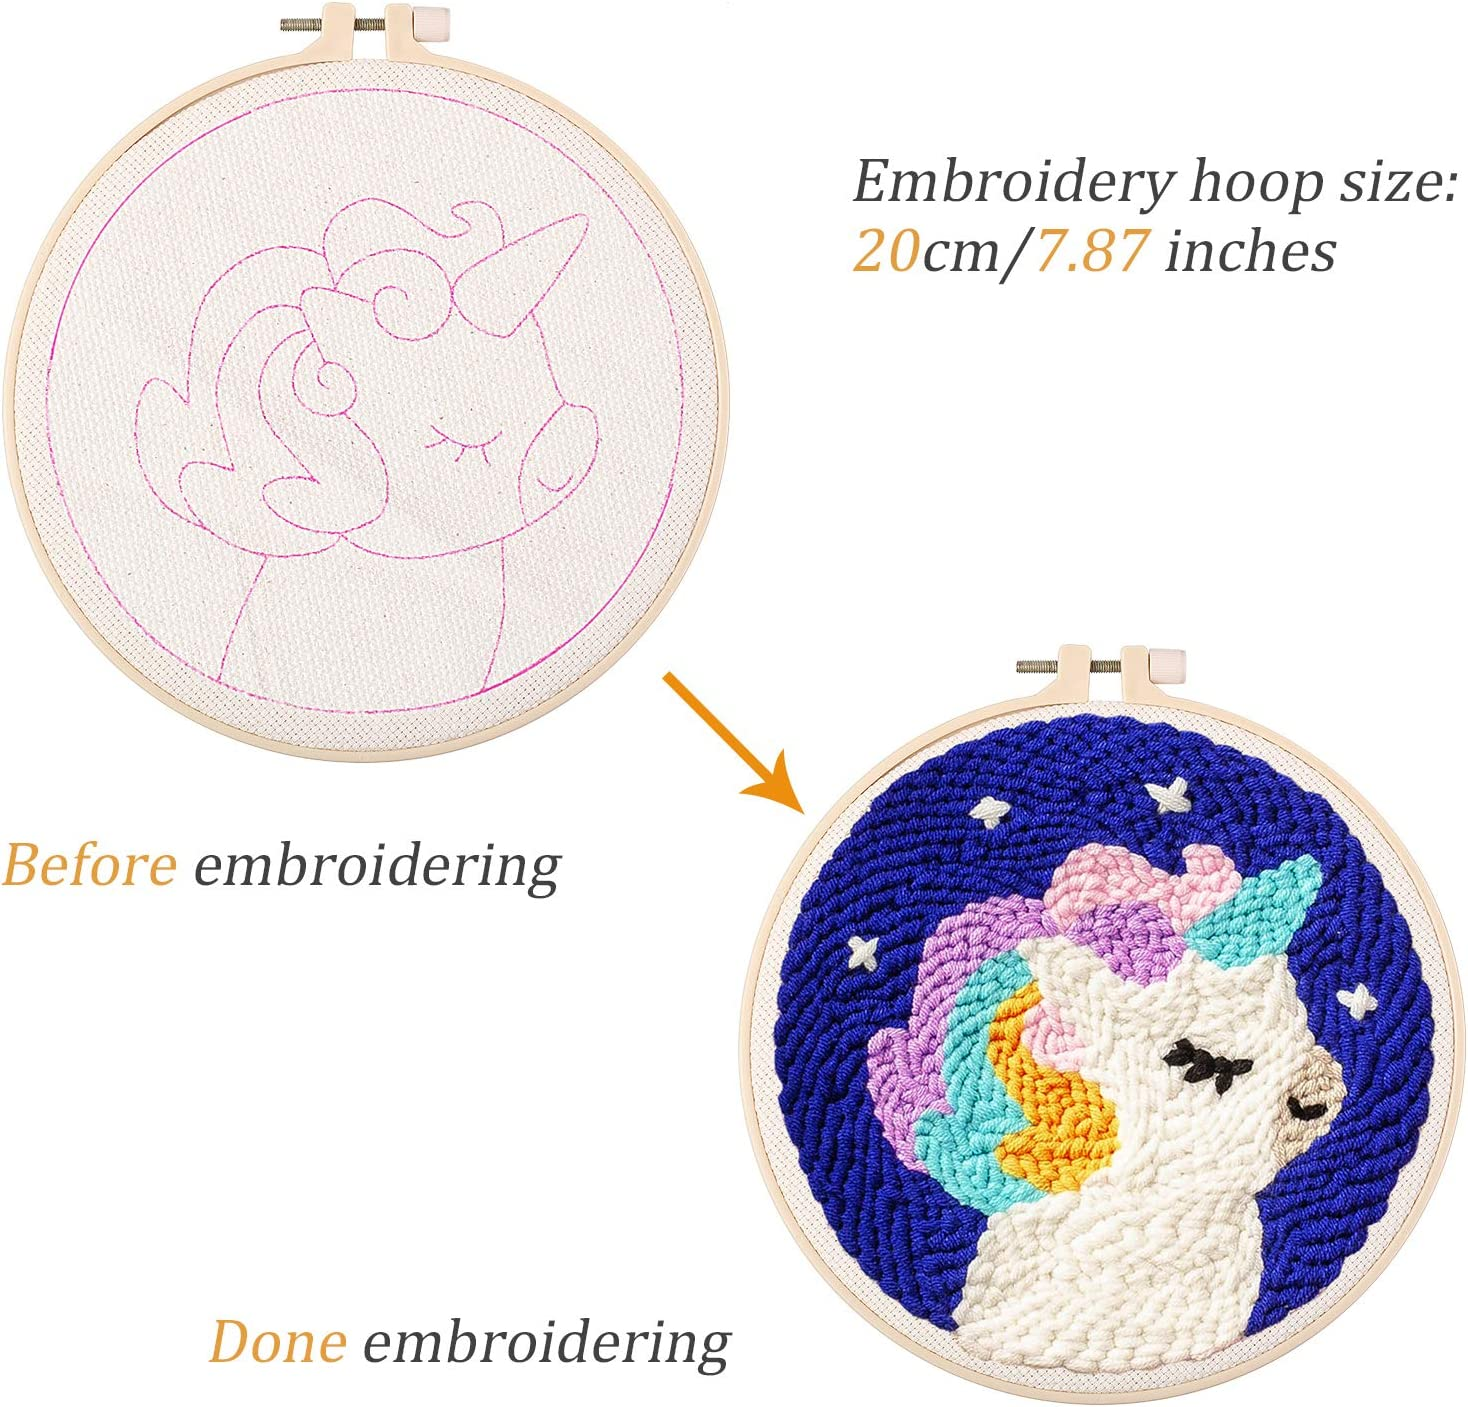 2 Sets Punch Needle Embroidery Starter Kit Stamped Embroidery Stitching Craft Tool Full Set with Embroidery Hoops Punch Needle Pre-Printed Cloth Yarn Scissor Instructions for Beginners DIY Lover